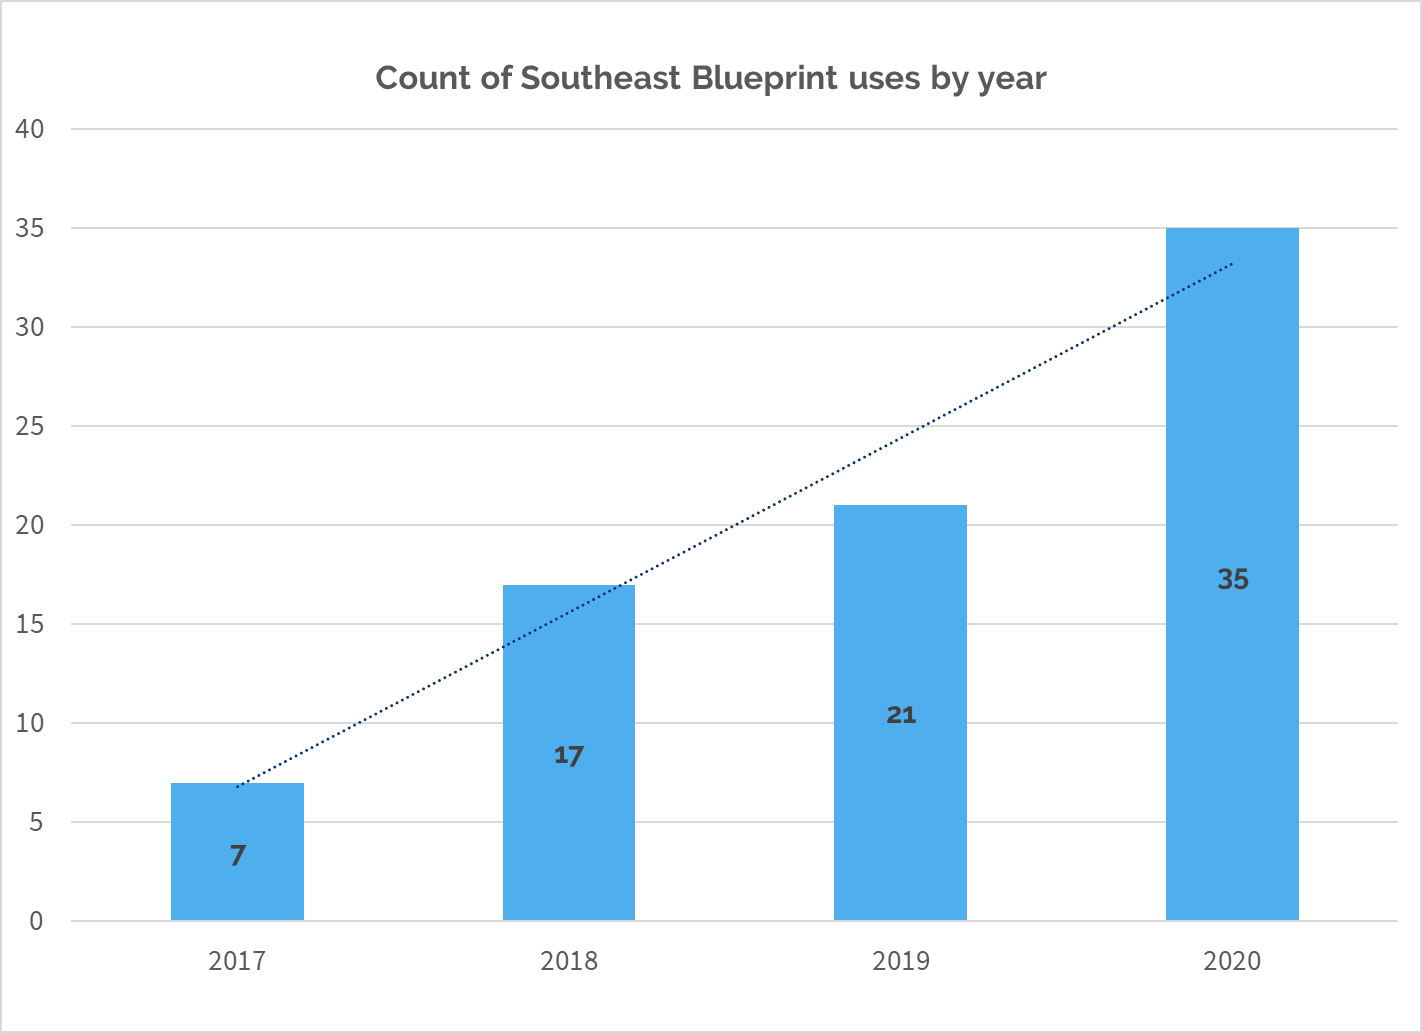 Bar graph showing number of Blueprint uses over time, increasing from 7 in 2017, 17 in 2018, 21 in 2019, and 35 in 2020.